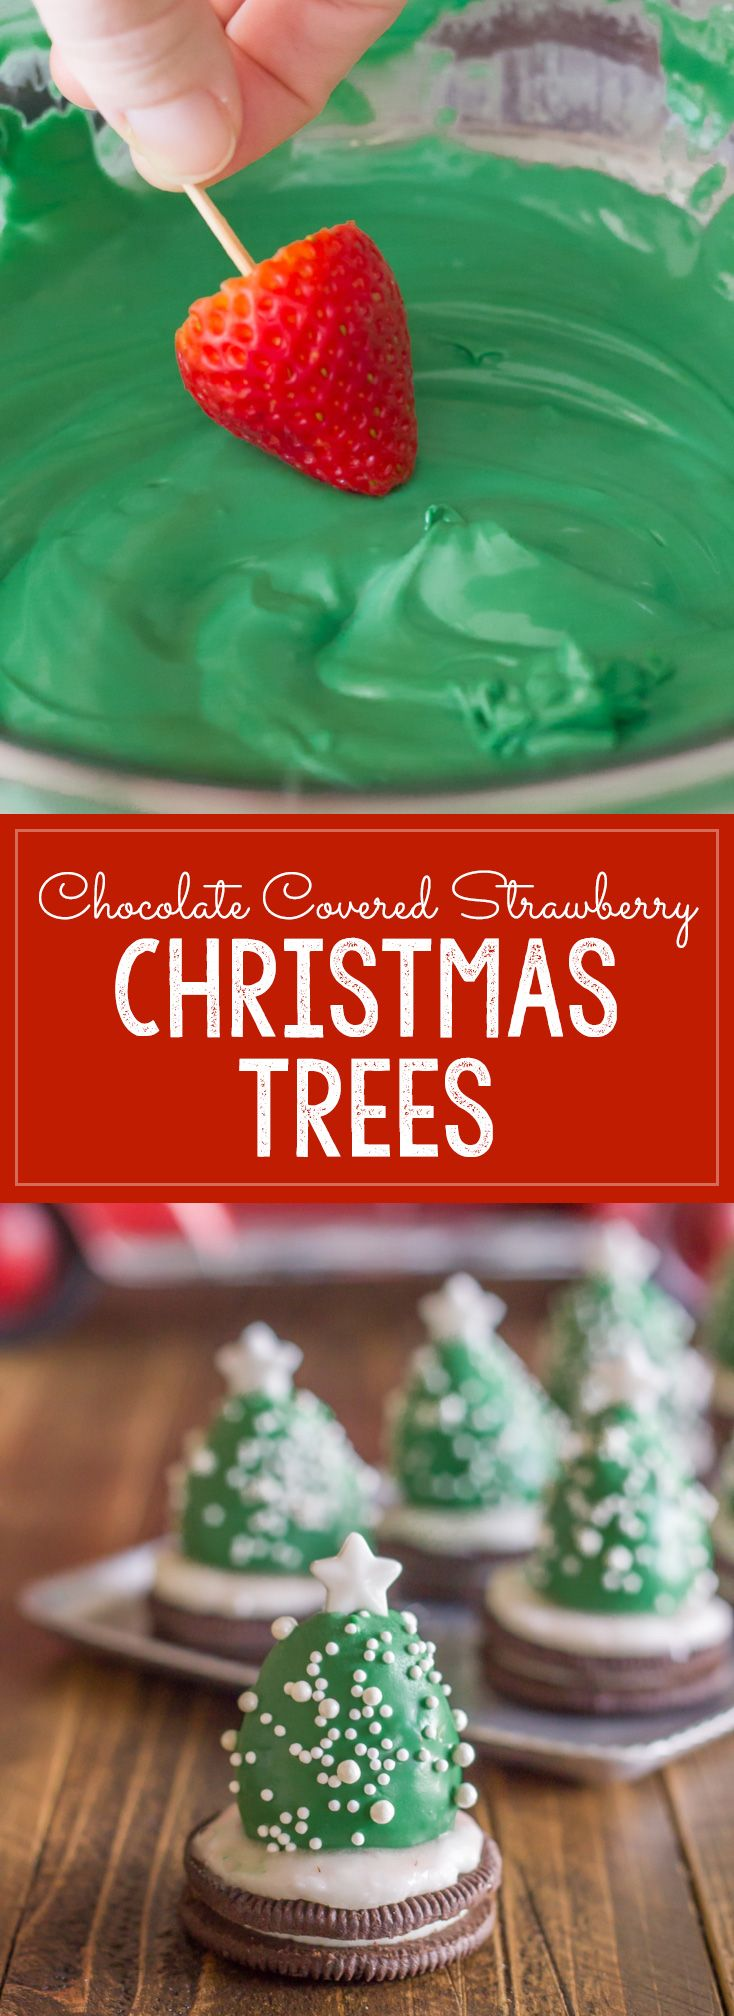 A fun and easy Christmas project to do with your kiddos!